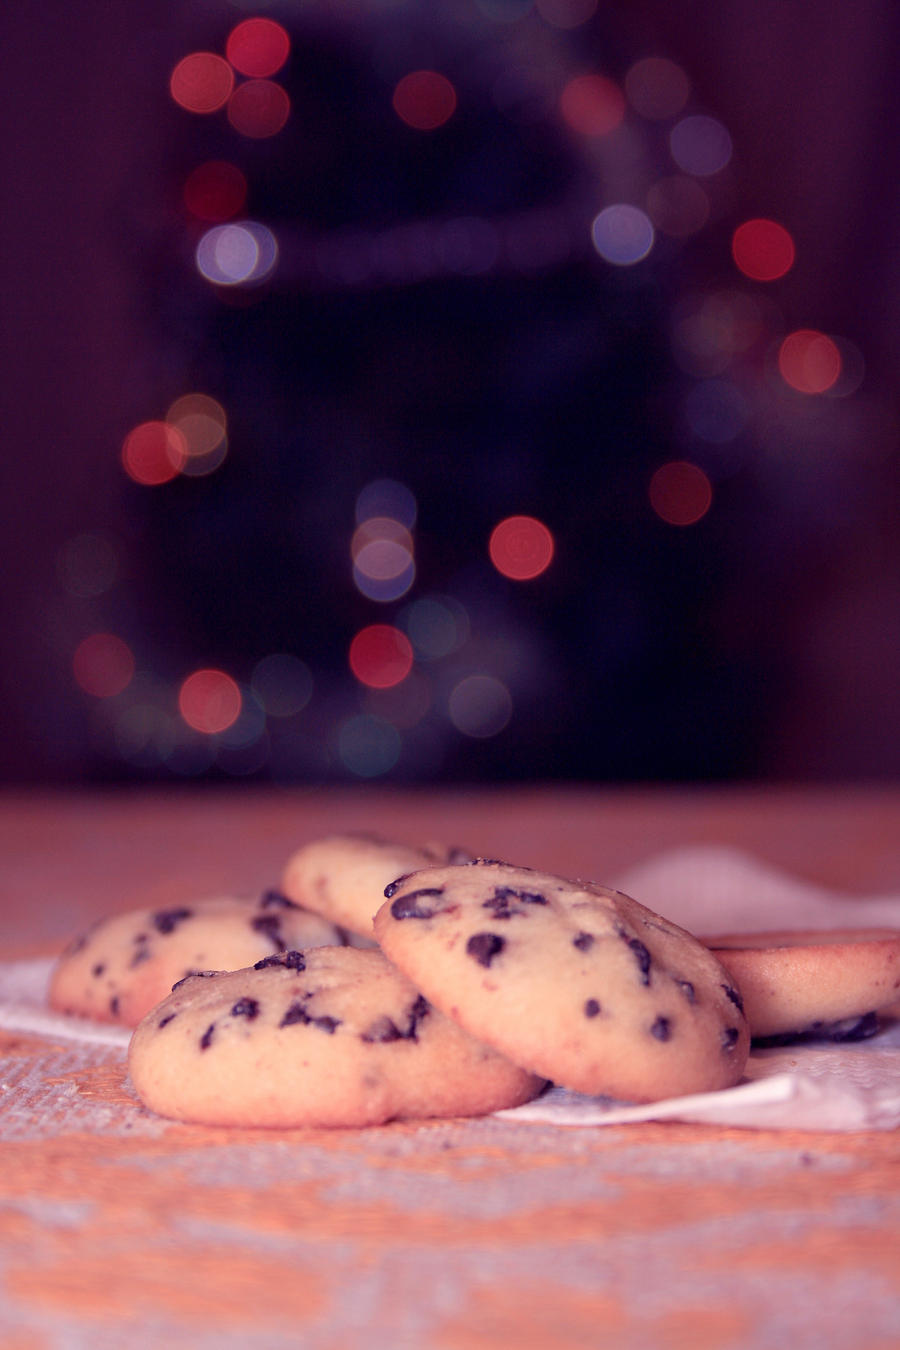 Cookies! by xChristina27x